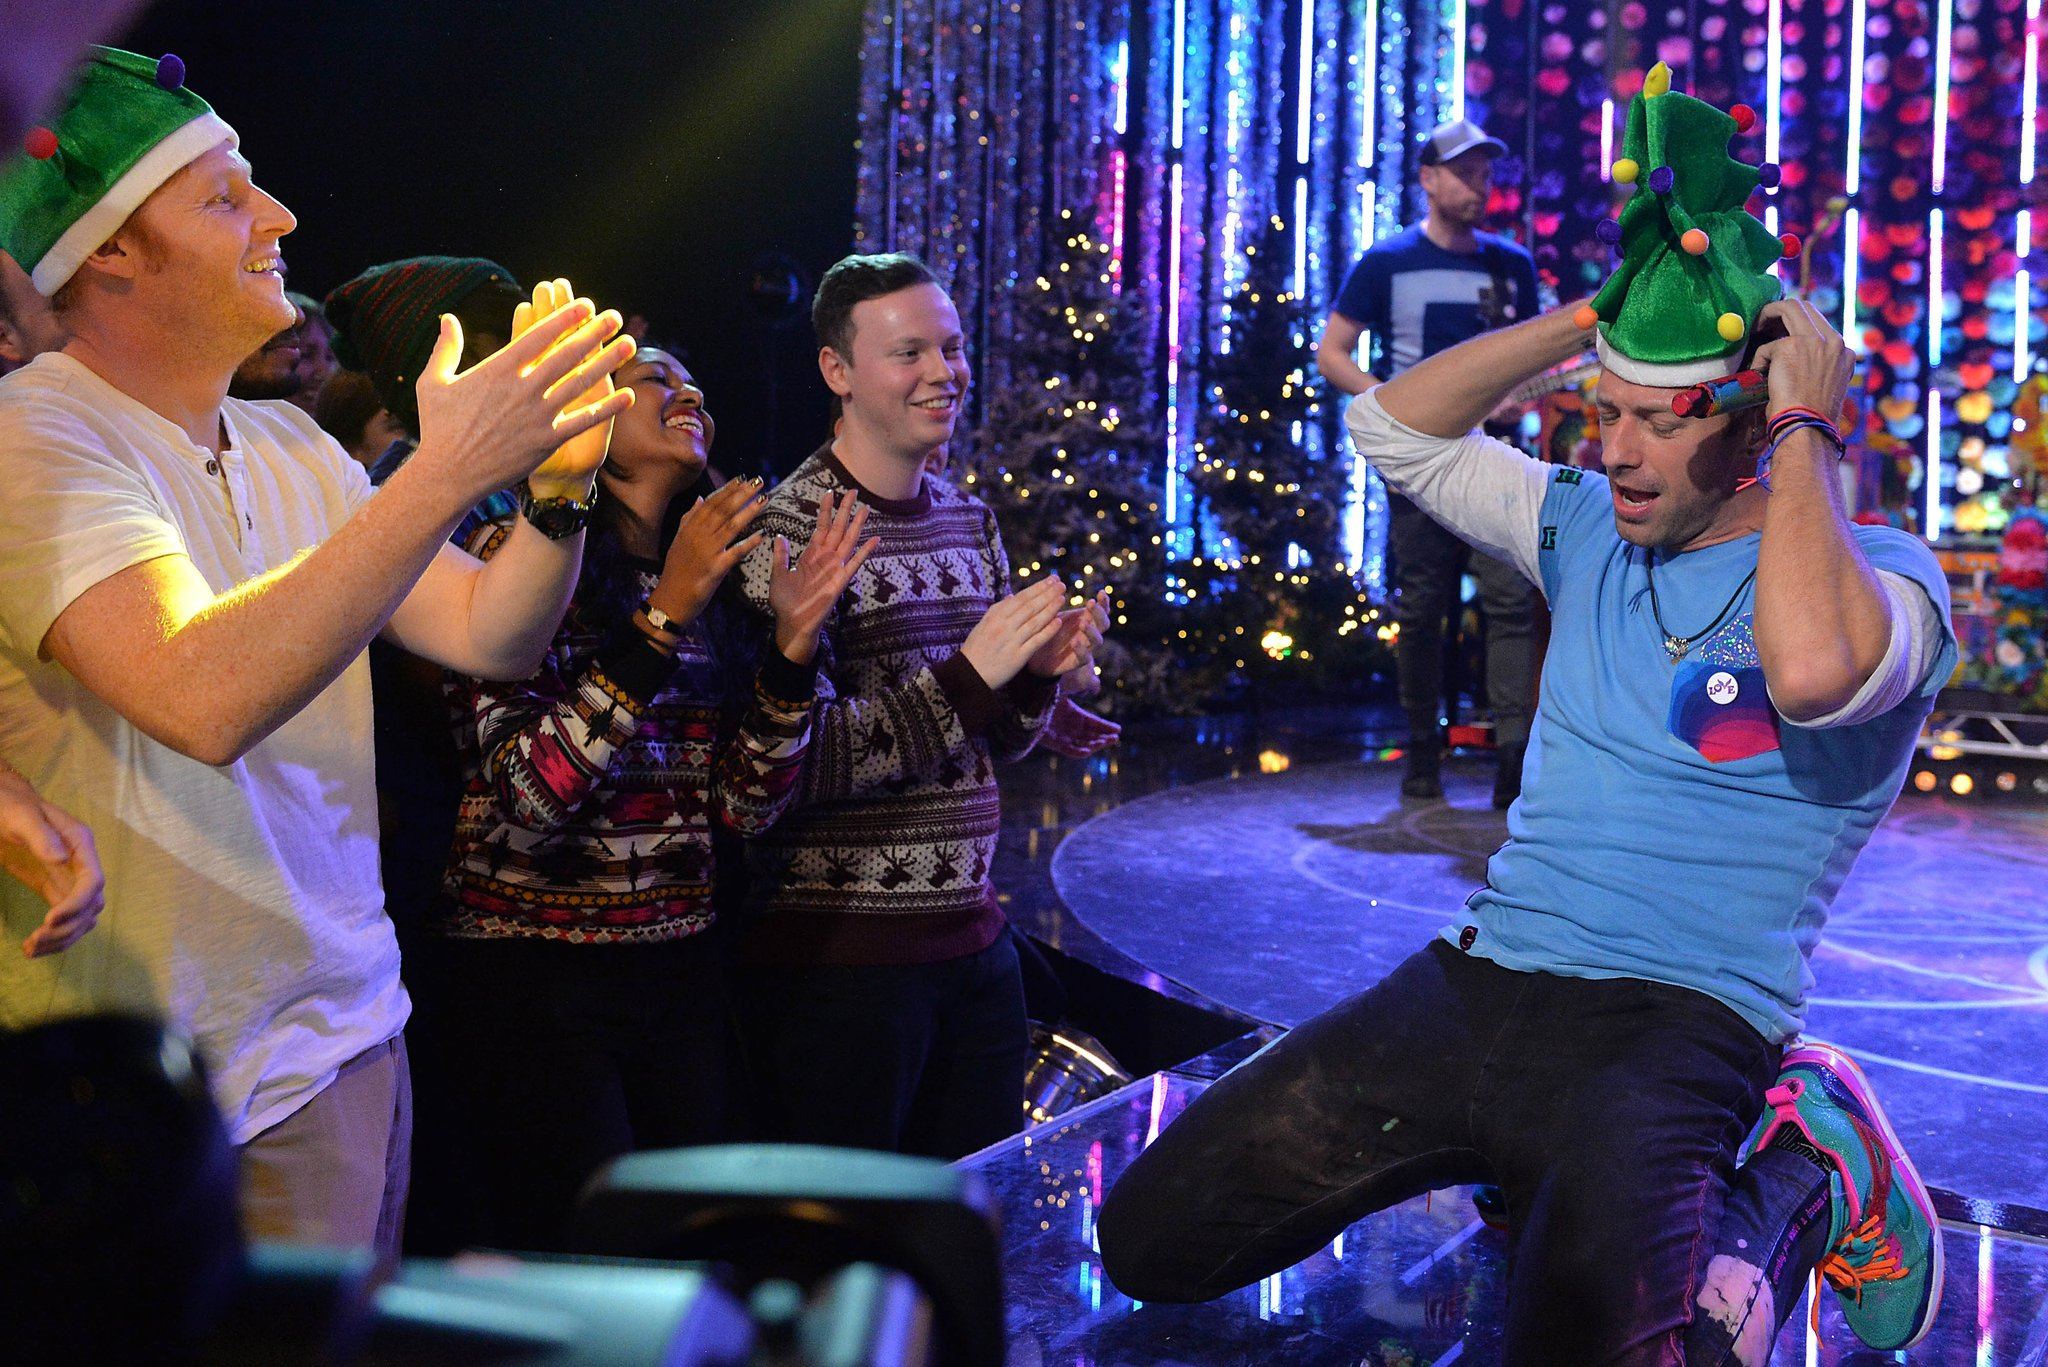 RT @bbcmusic: Go behind the scenes of Top of the Pops this Xmas (+enjoy Chris Martin from @coldplay's hat) https://t.co/Lr9KtZNA23 https://…